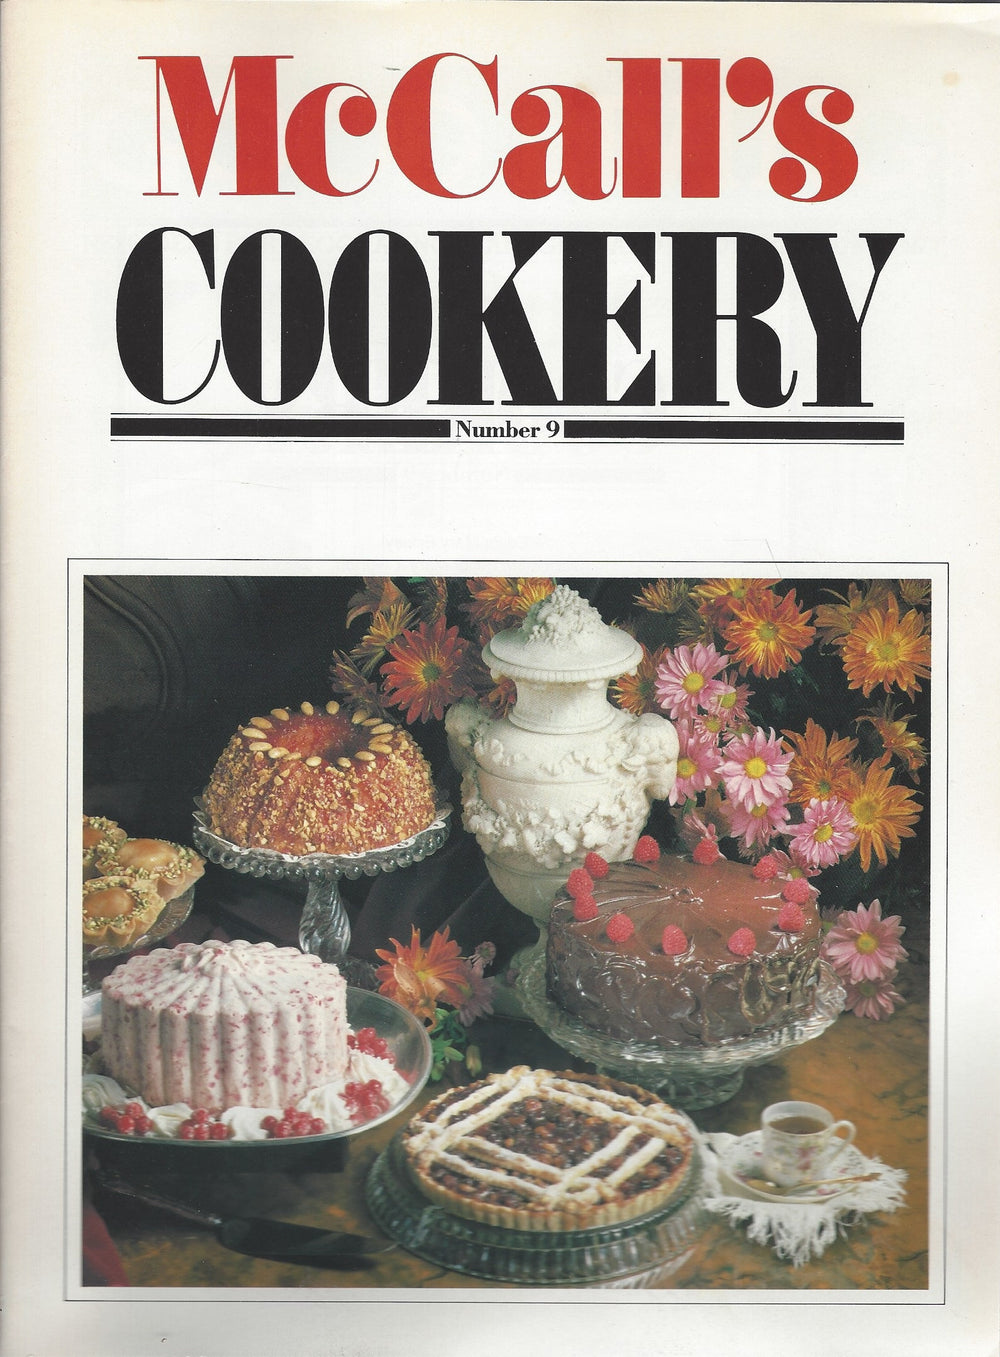 McCall's Cookery No. 9 (1984)